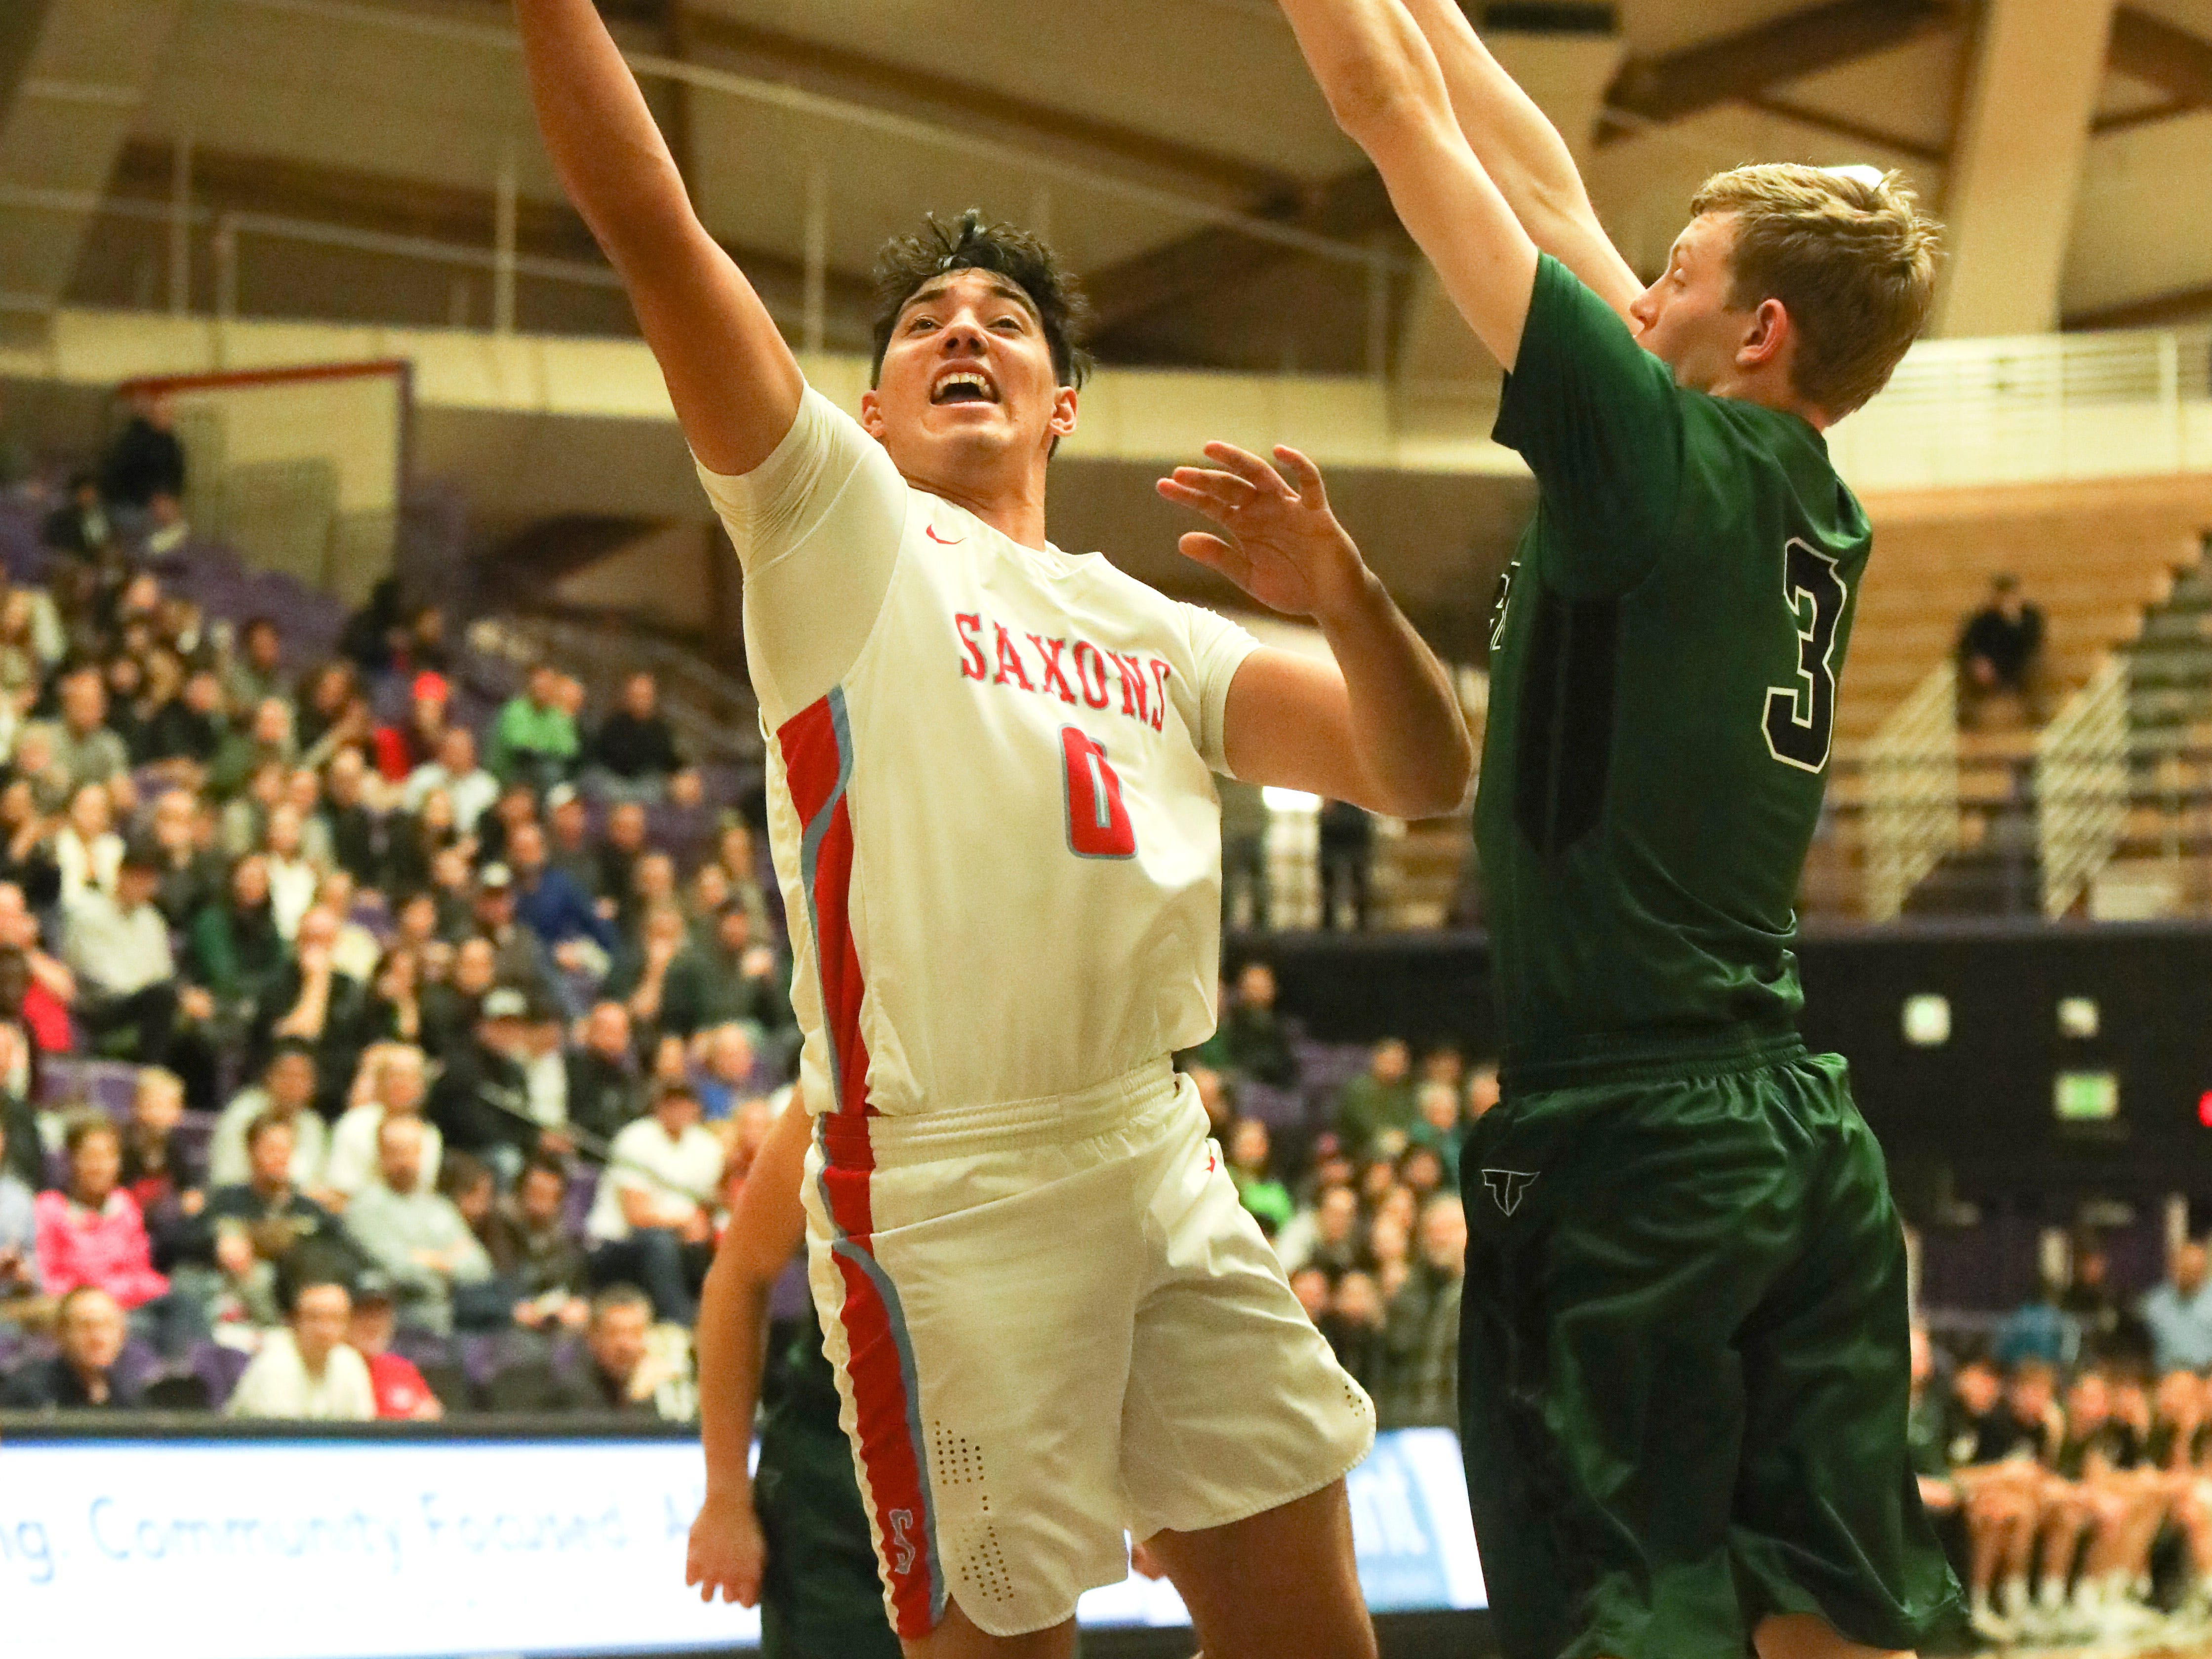 South Salem's Treyden Harris (0) takes a shot past Tigard's Jake Bullard (3) during the OSAA 6A boys basketball state tournament quarterfinal on Wednesday, March 6 at Chiles Center.